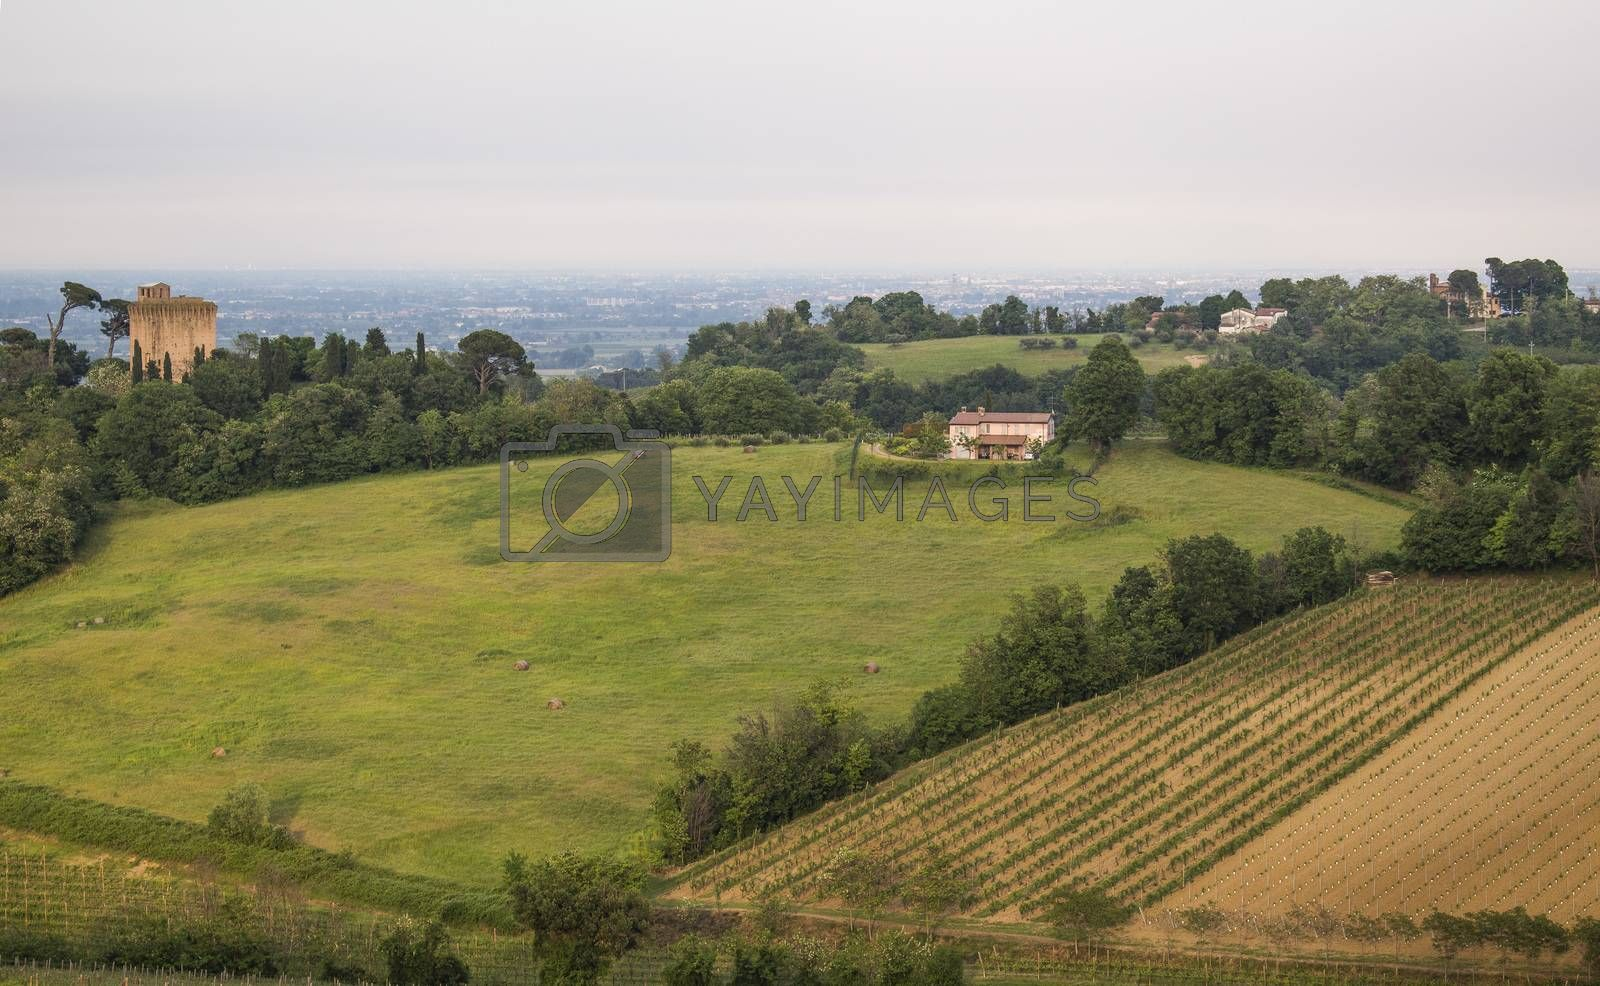 View of Emilia Romagna countryside near Faenza in Italy